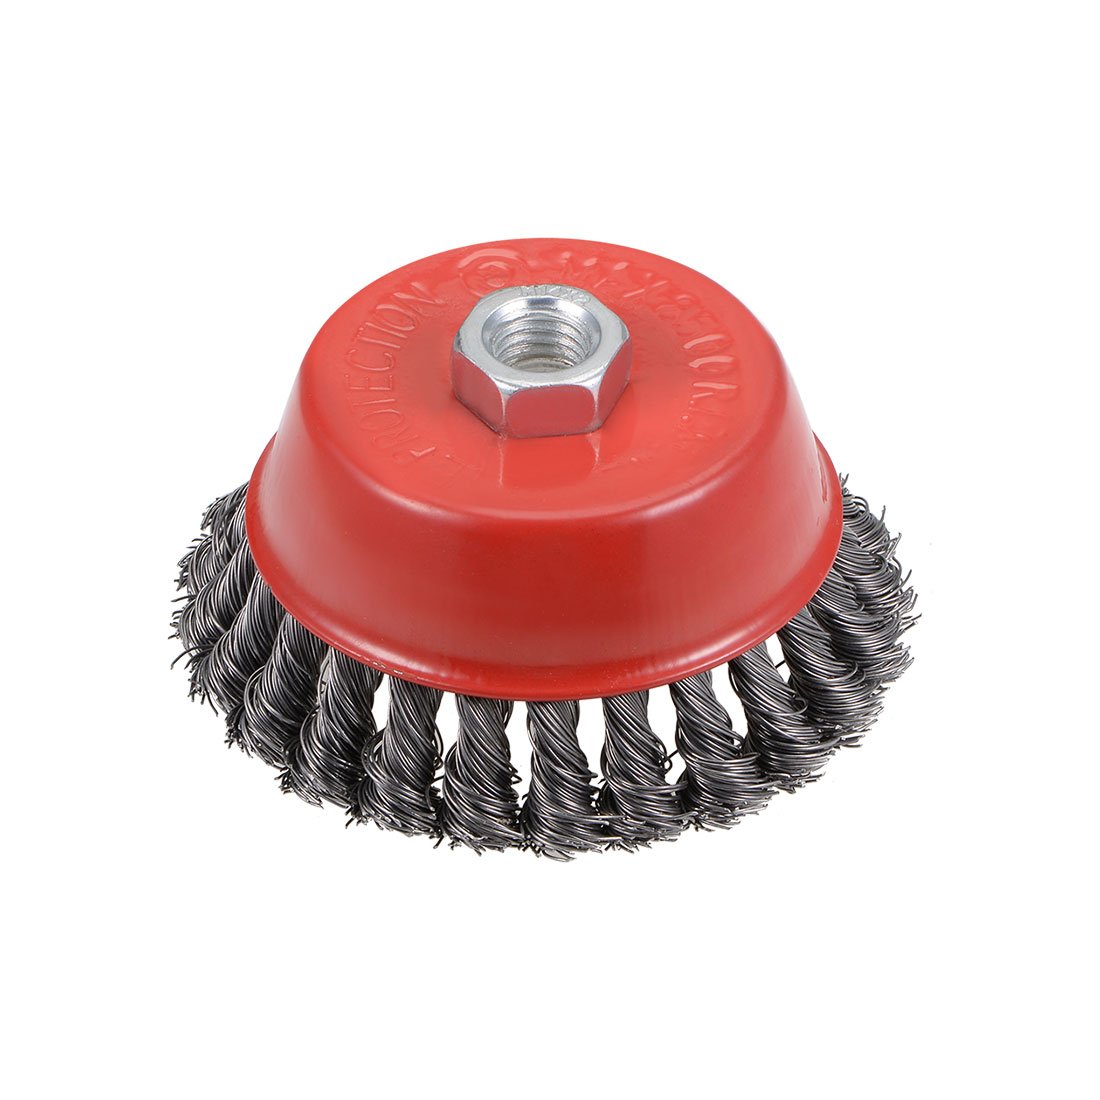 4-Inch Wire Cup Brush Twist Knotted Crimped Steel with M14 Threaded Hole